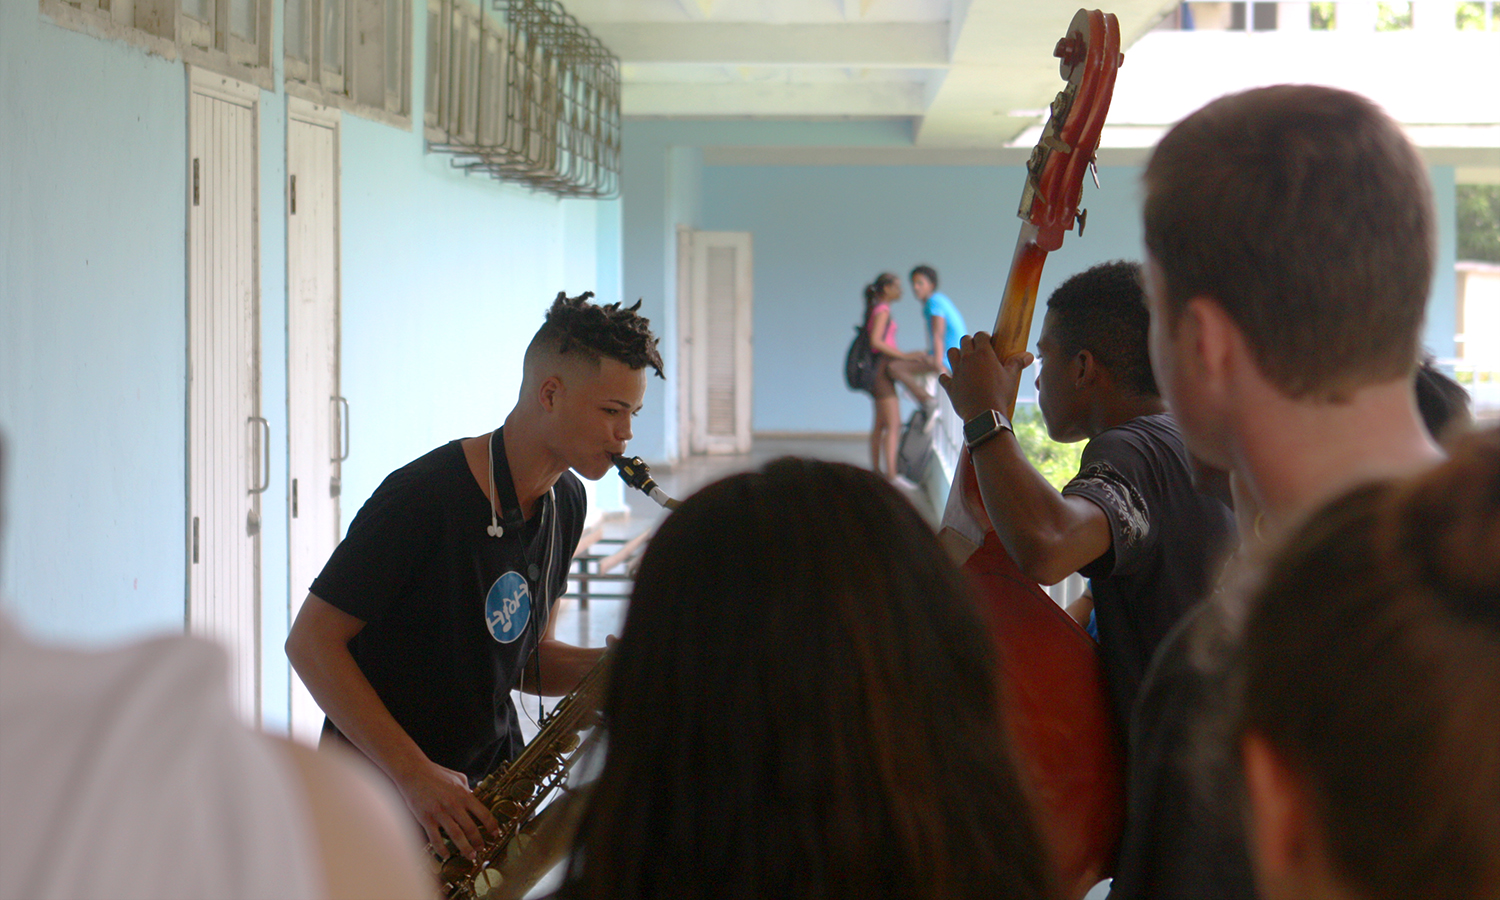 A student studying at the National School of the Arts plays his saxophone for the HWS group.